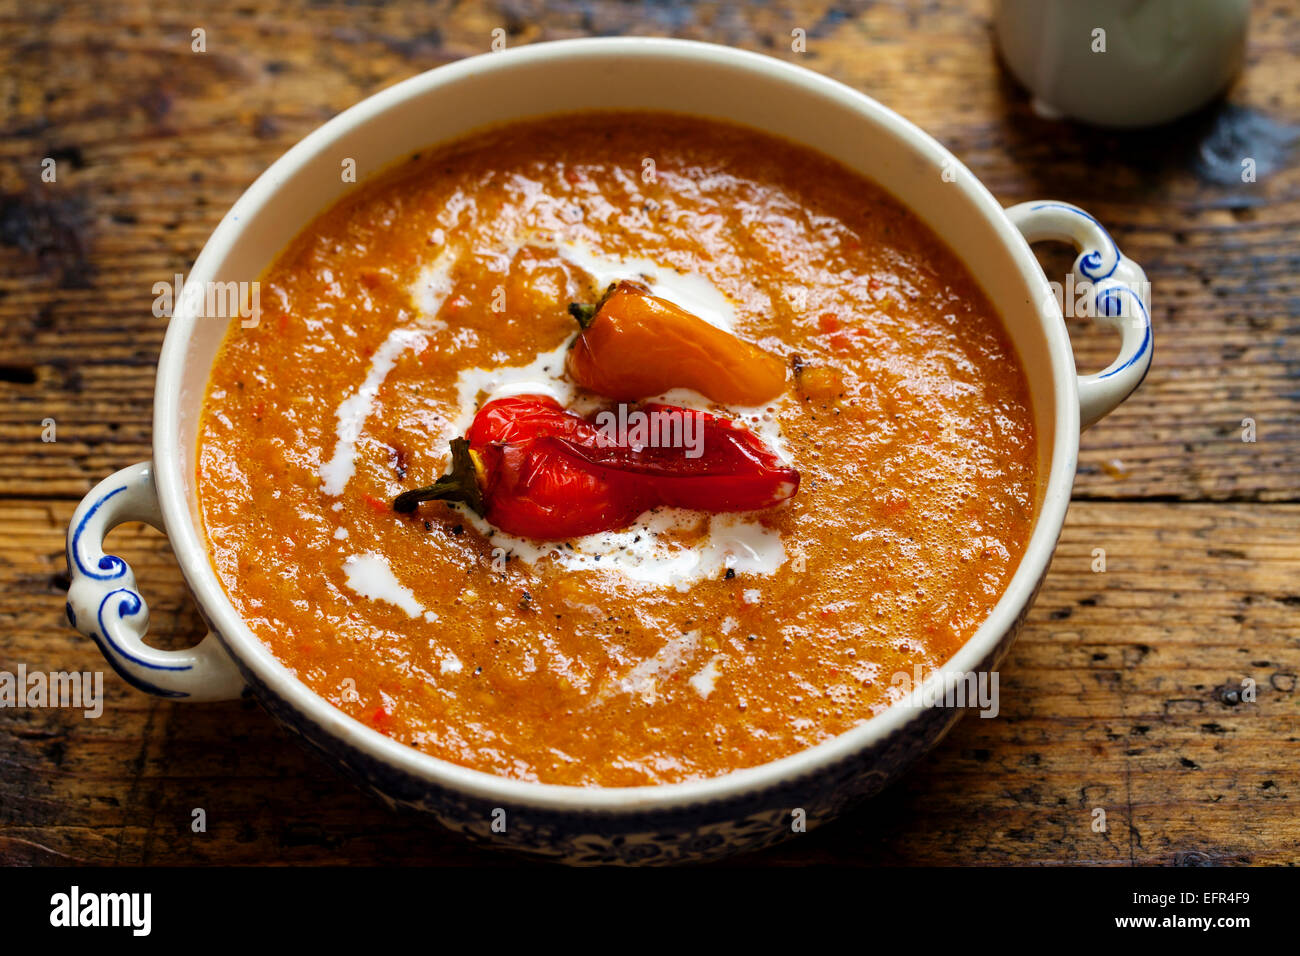 Roast pepper and tomato soup Stock Photo